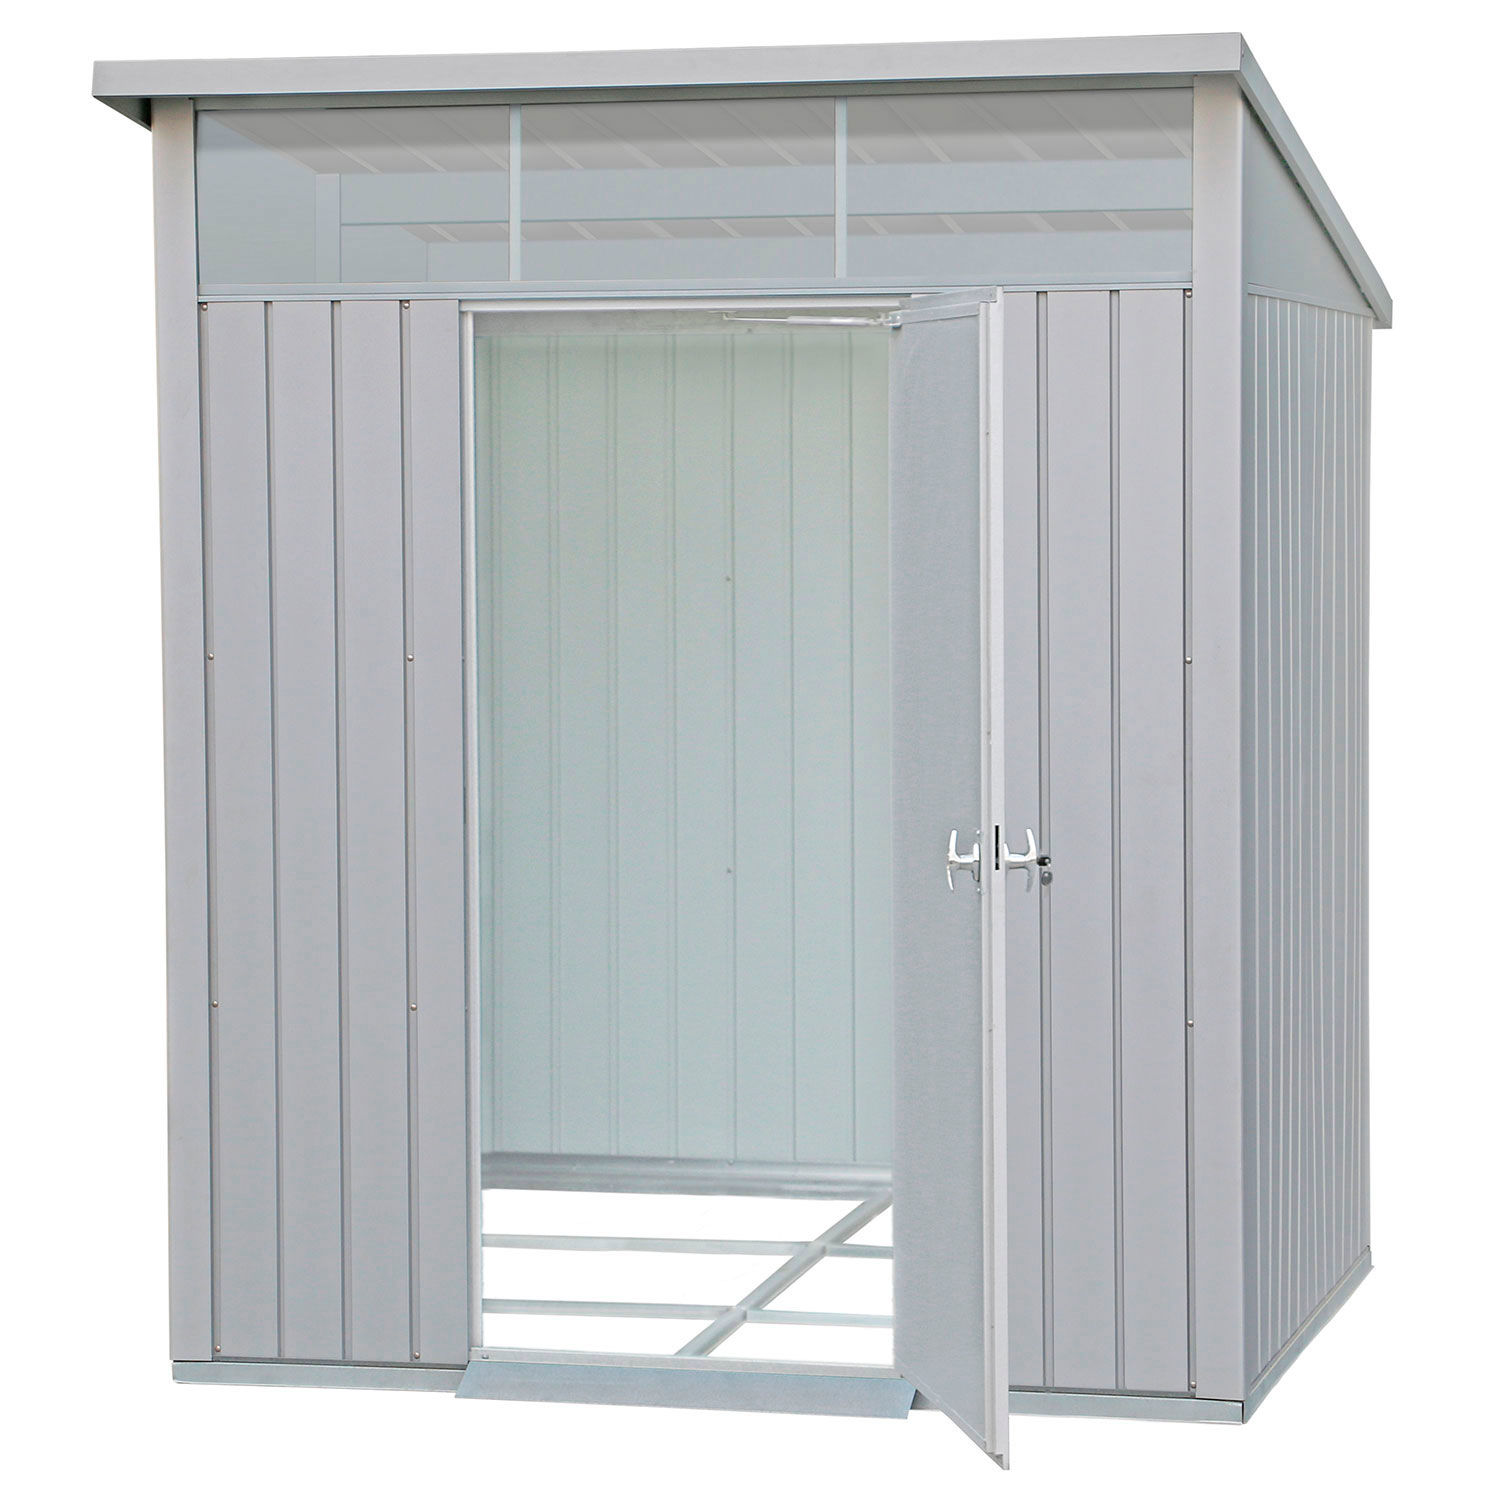 Steel Storage Sheds Buildings Storage Sheds Sheds Metal Duramax Palladium